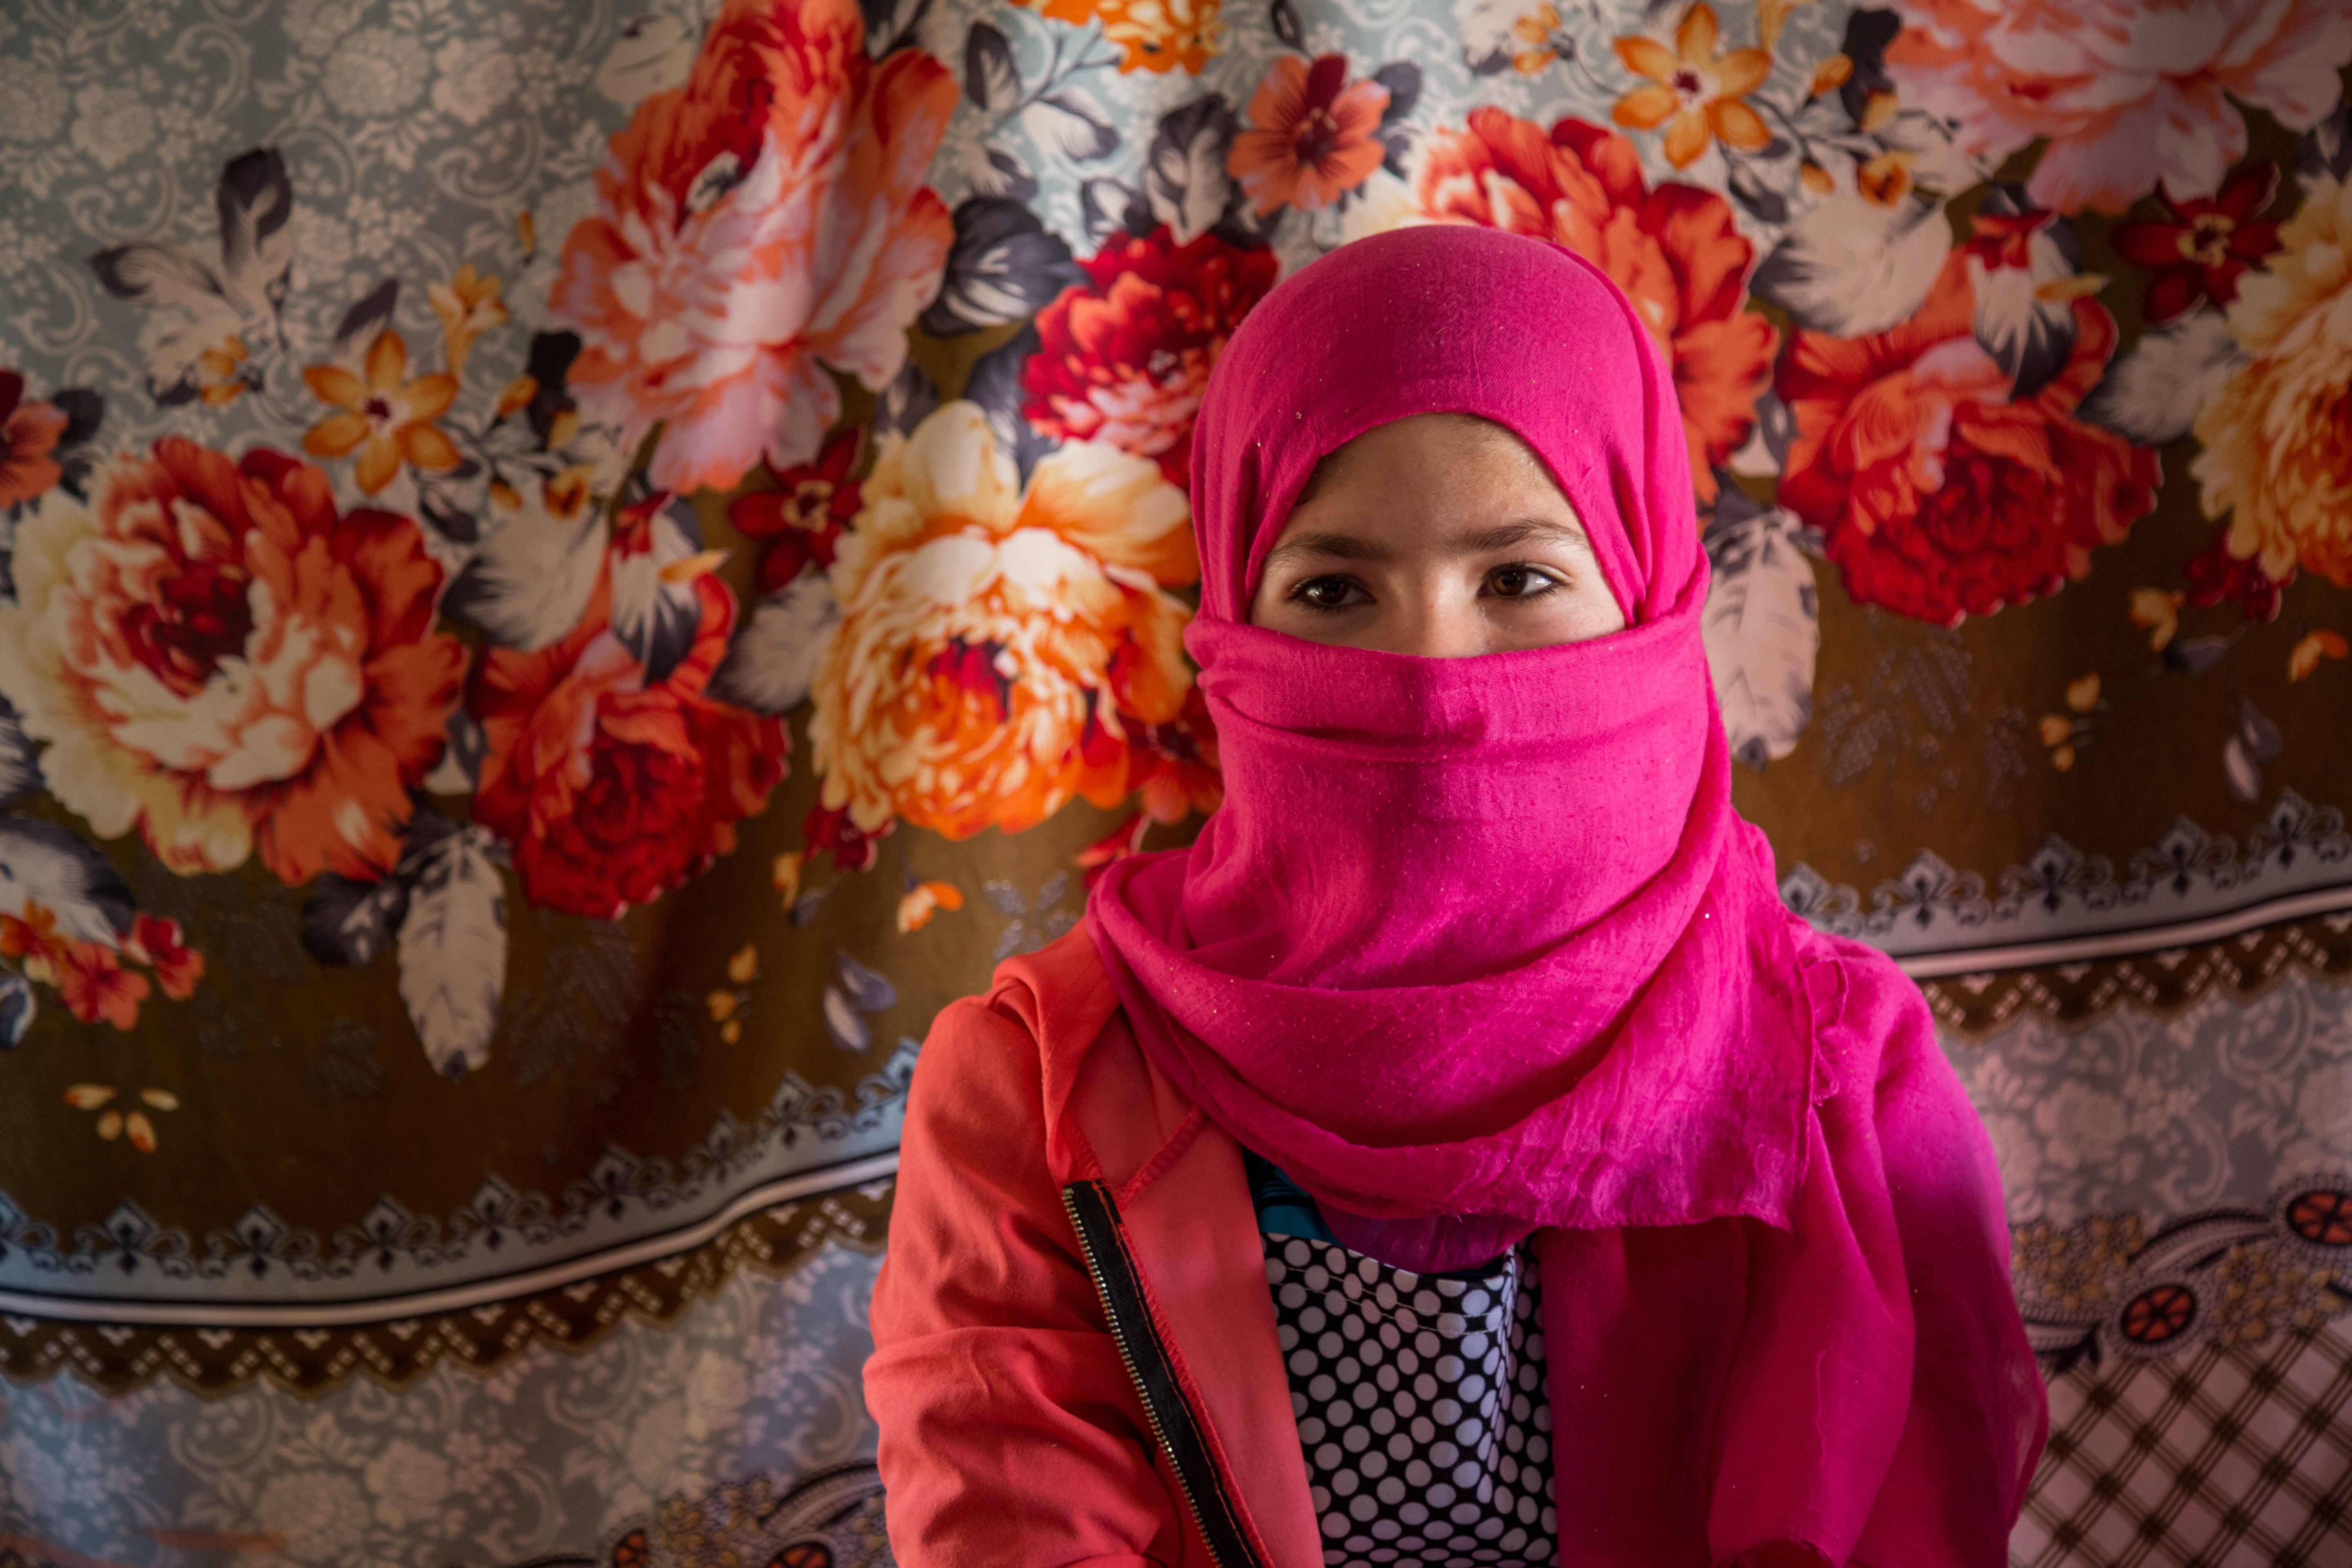 13-year-old girl living in an Informal Tented Settlement in Jordan